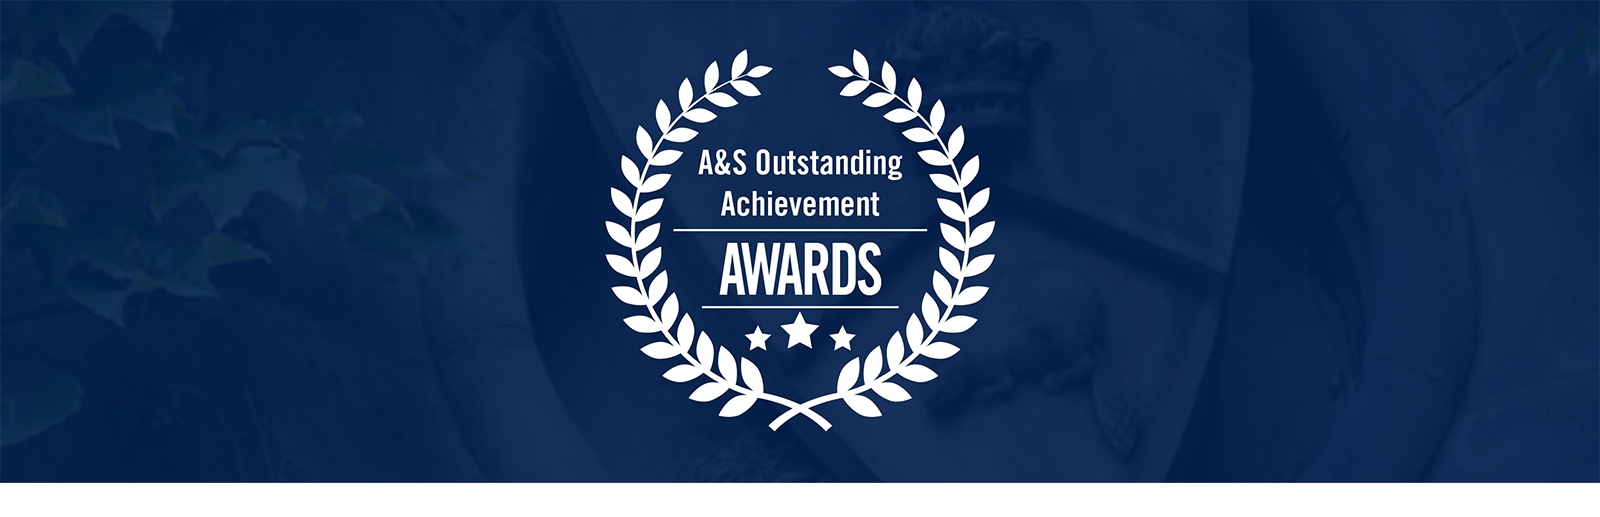 AS Outstanding Achievement Awards web banner